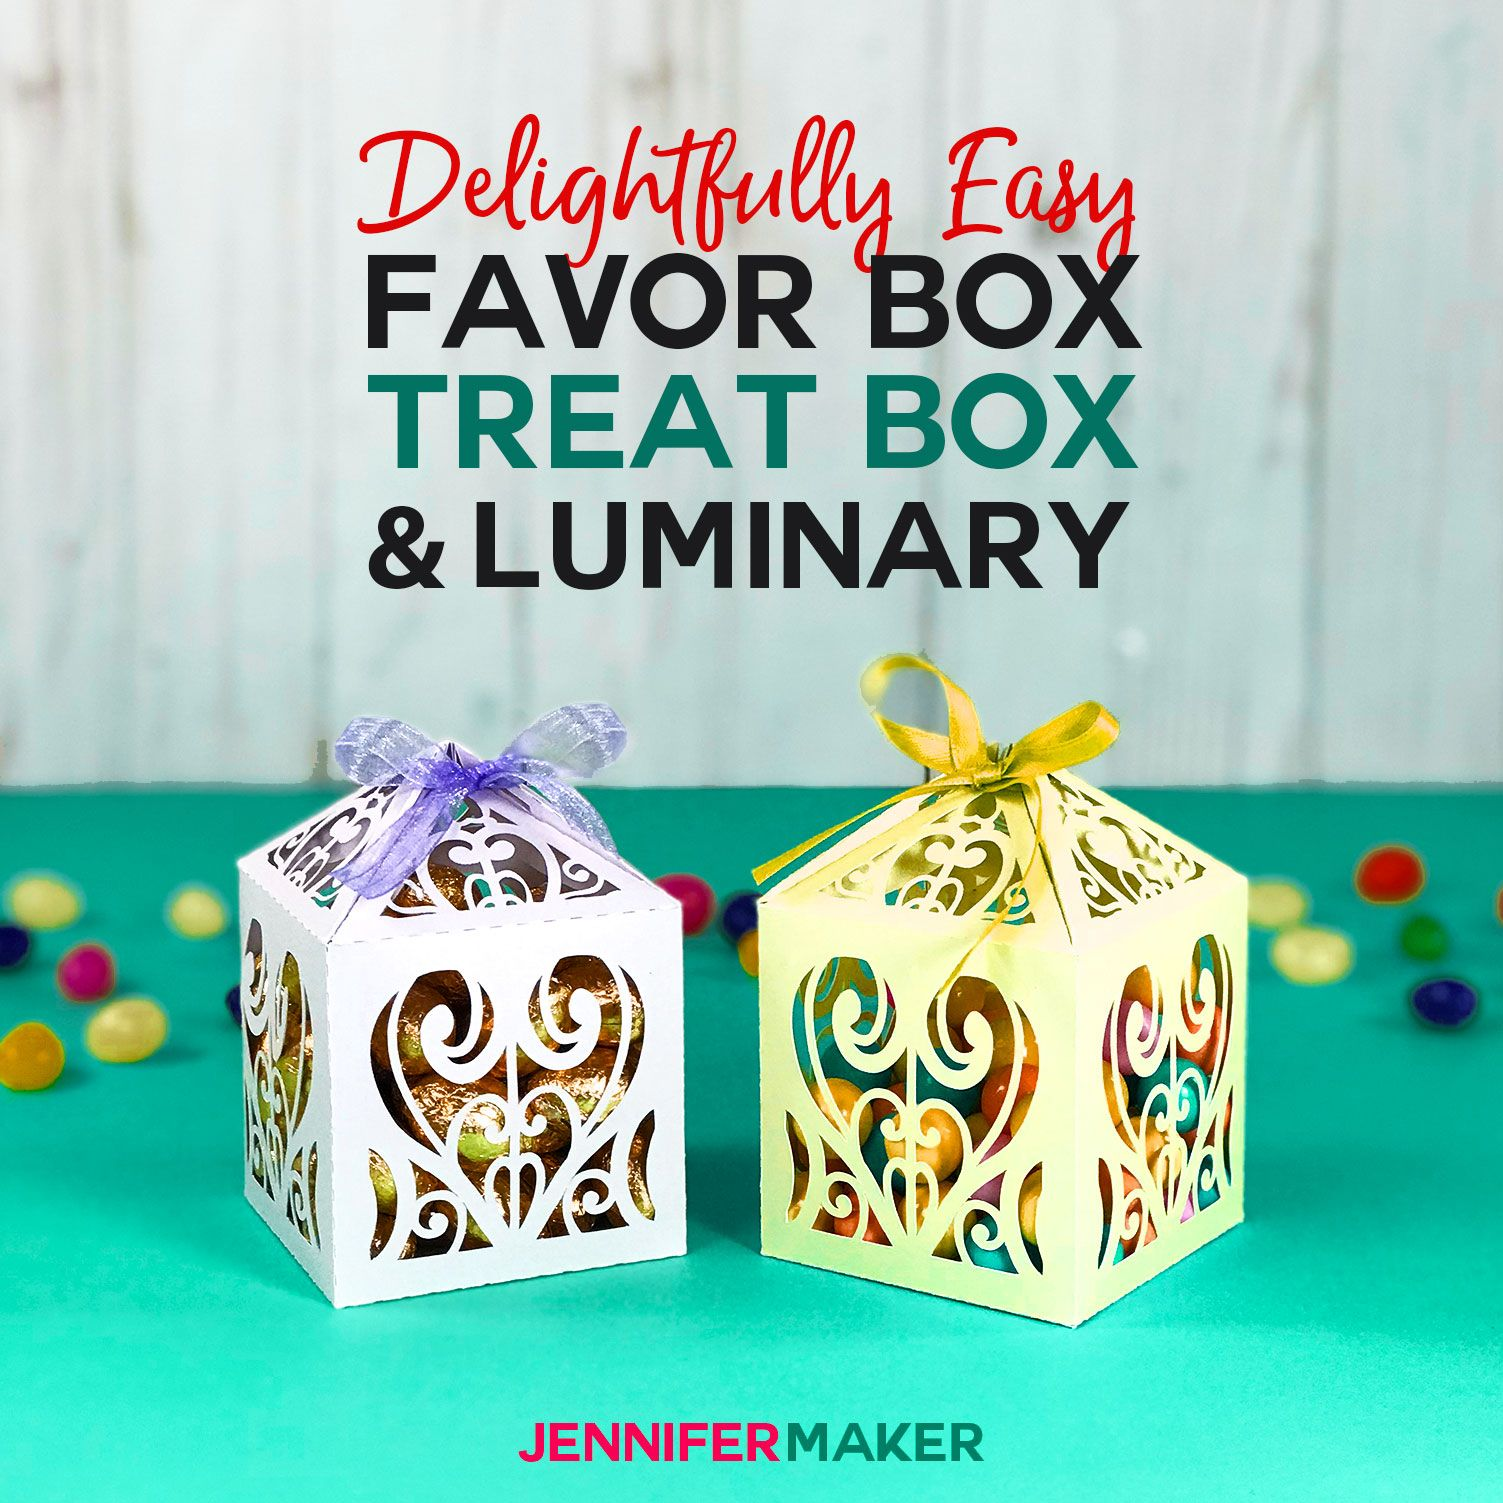 DIY Favor Boxes, Treat Boxes, & Paper Luminaries Crafts